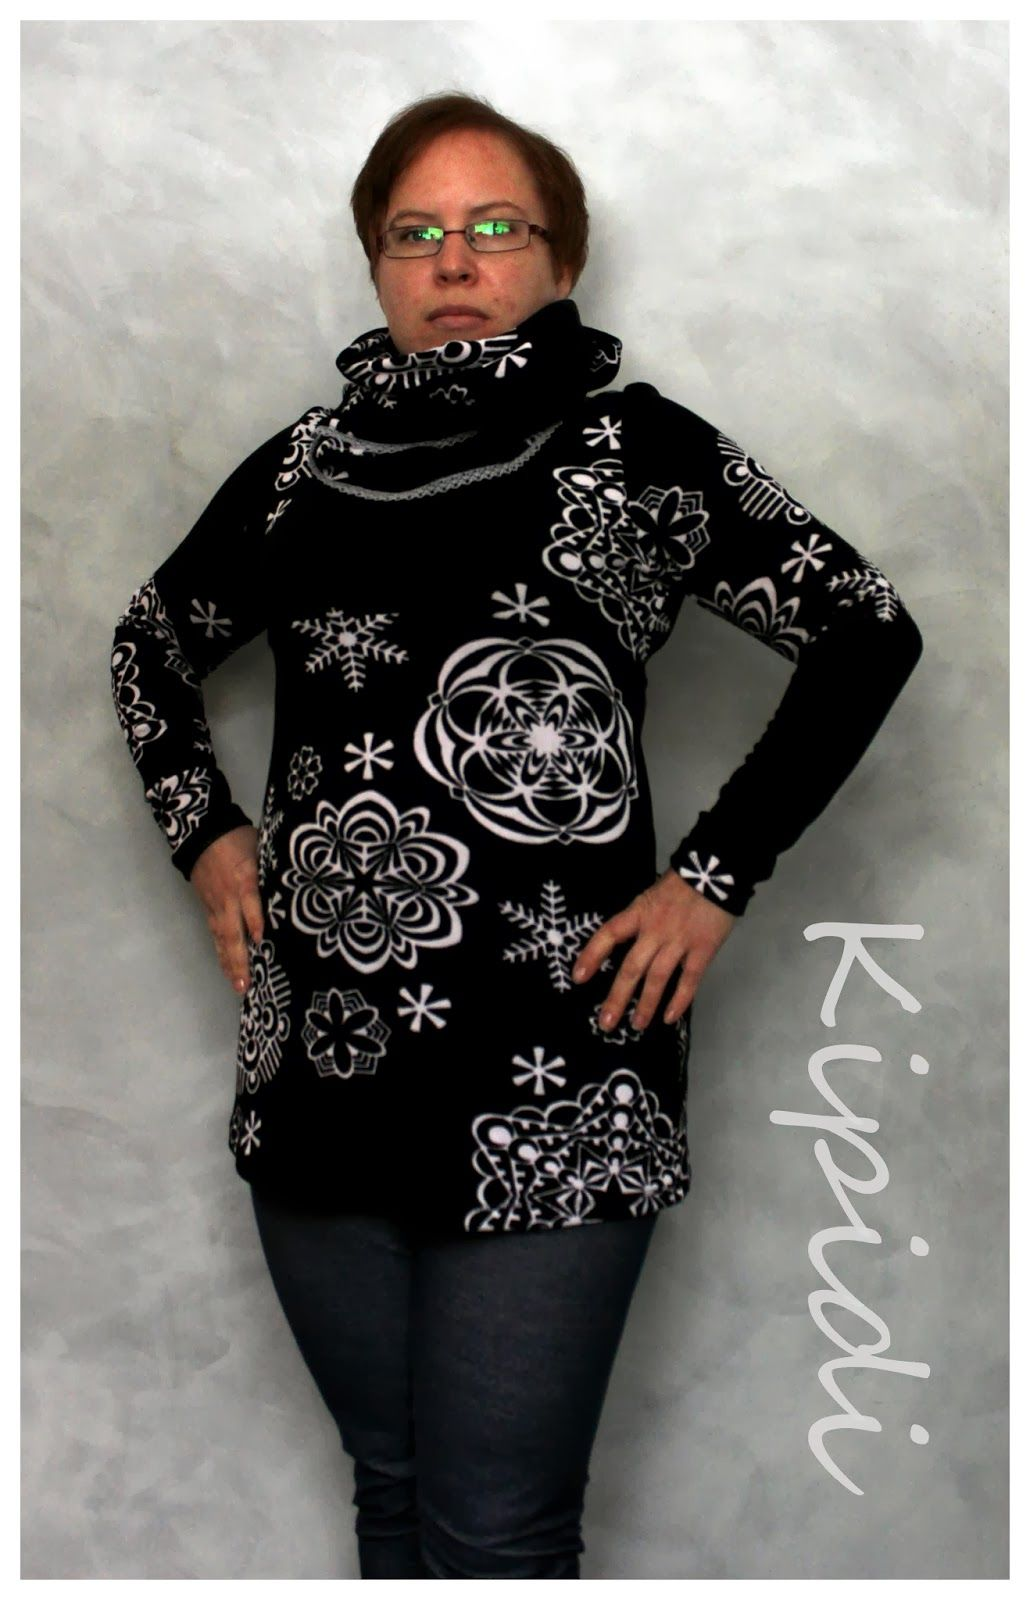 Onion 2035 tunic with snood   My crafts   Pinterest   Snood and Craft